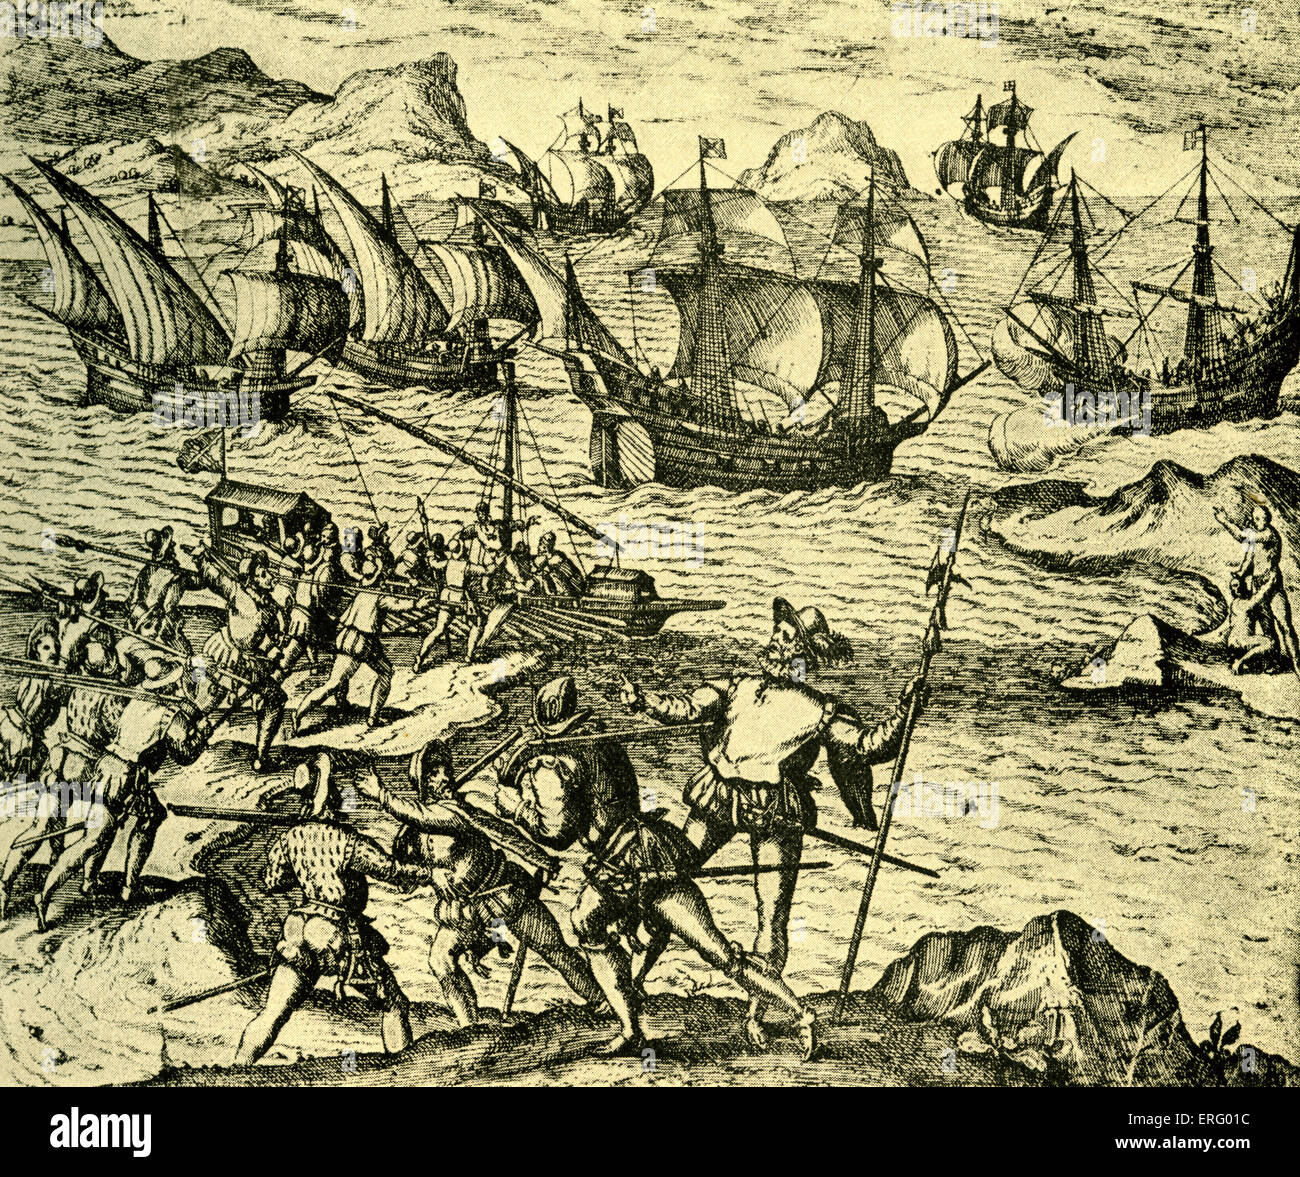 French and Spanish adventurers in the Southern Seas.Late 16th - 17th century sailors, deserters seeking their forturnes - Stock Image